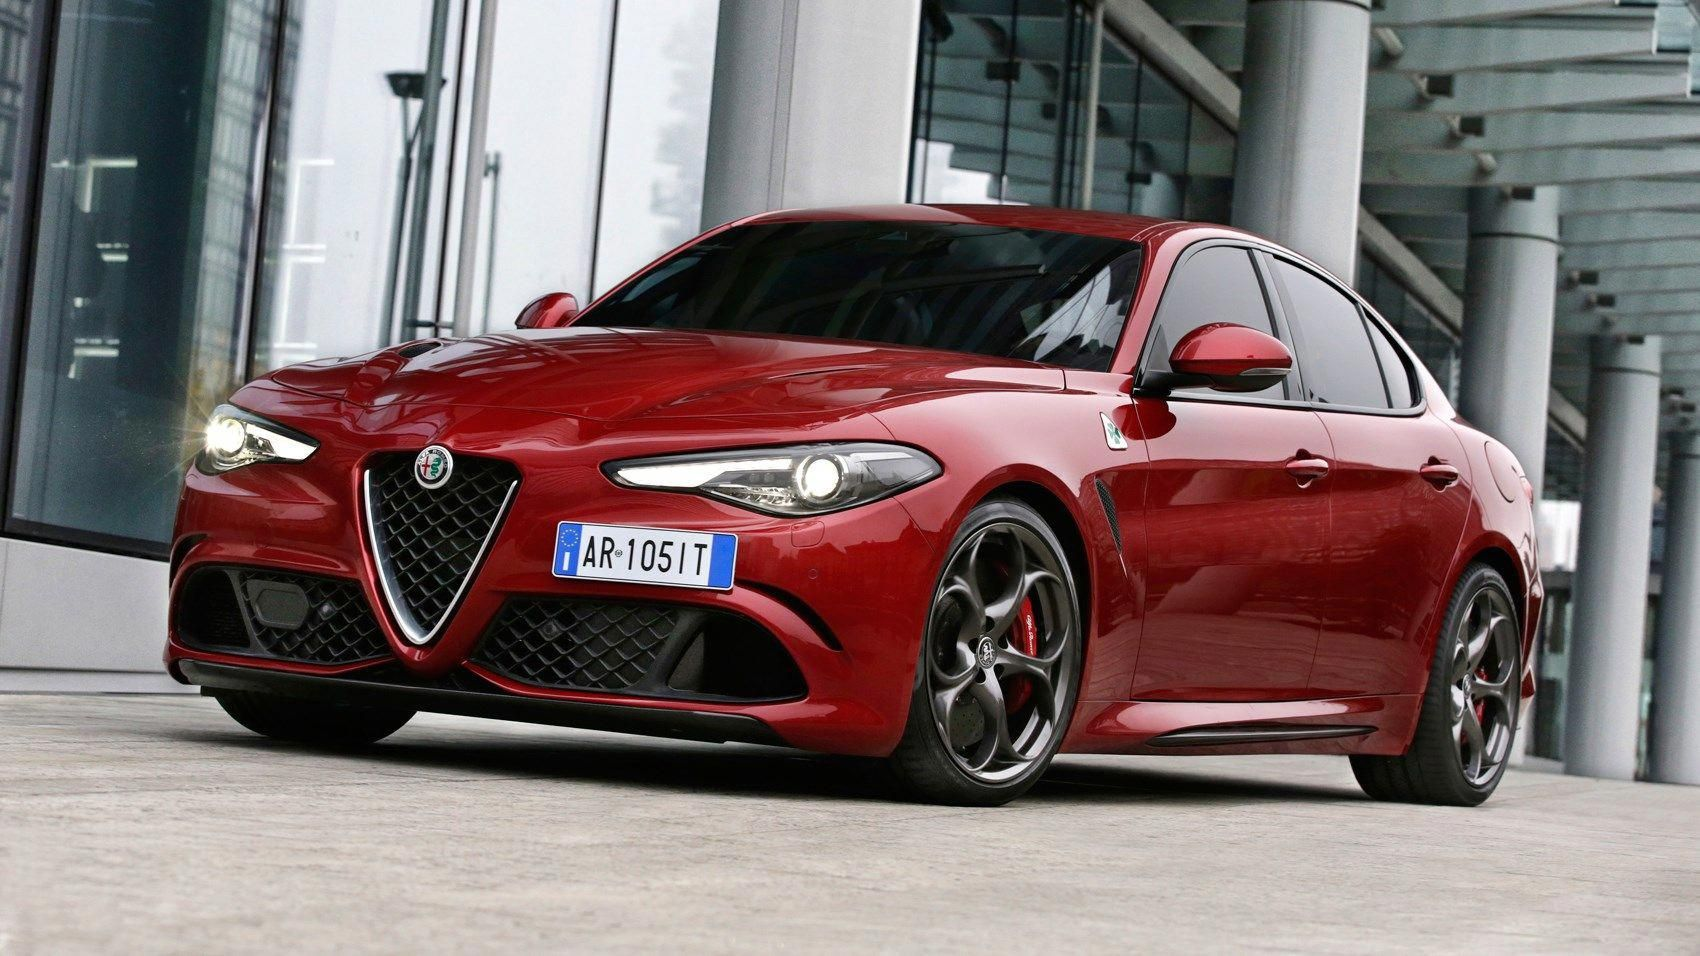 Alfa Romeo Giulia Quadrifoglio 2016 Review By Car Magazine Alfaromeogiulia